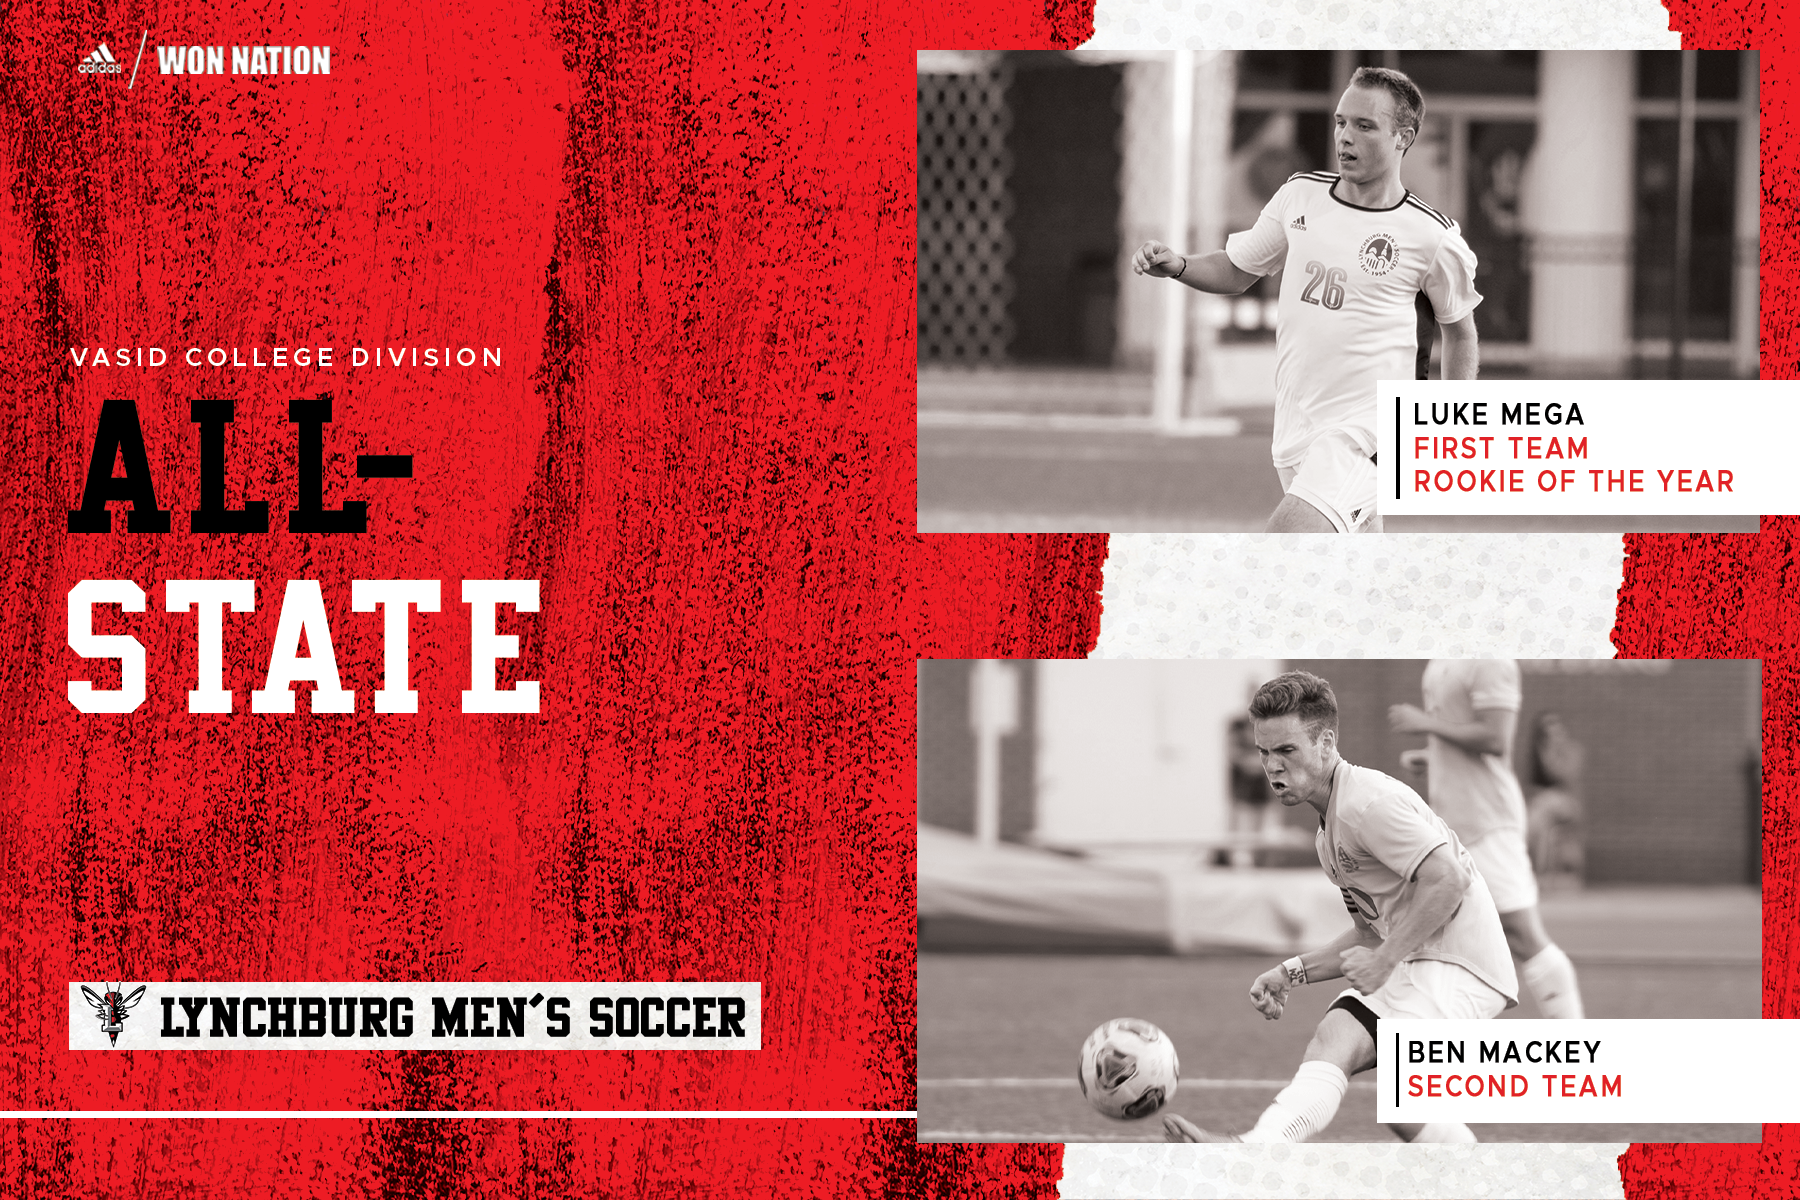 Red and white all-state graphic with black and white photos of Luke Mega and Ben Mackey playing soccer at right